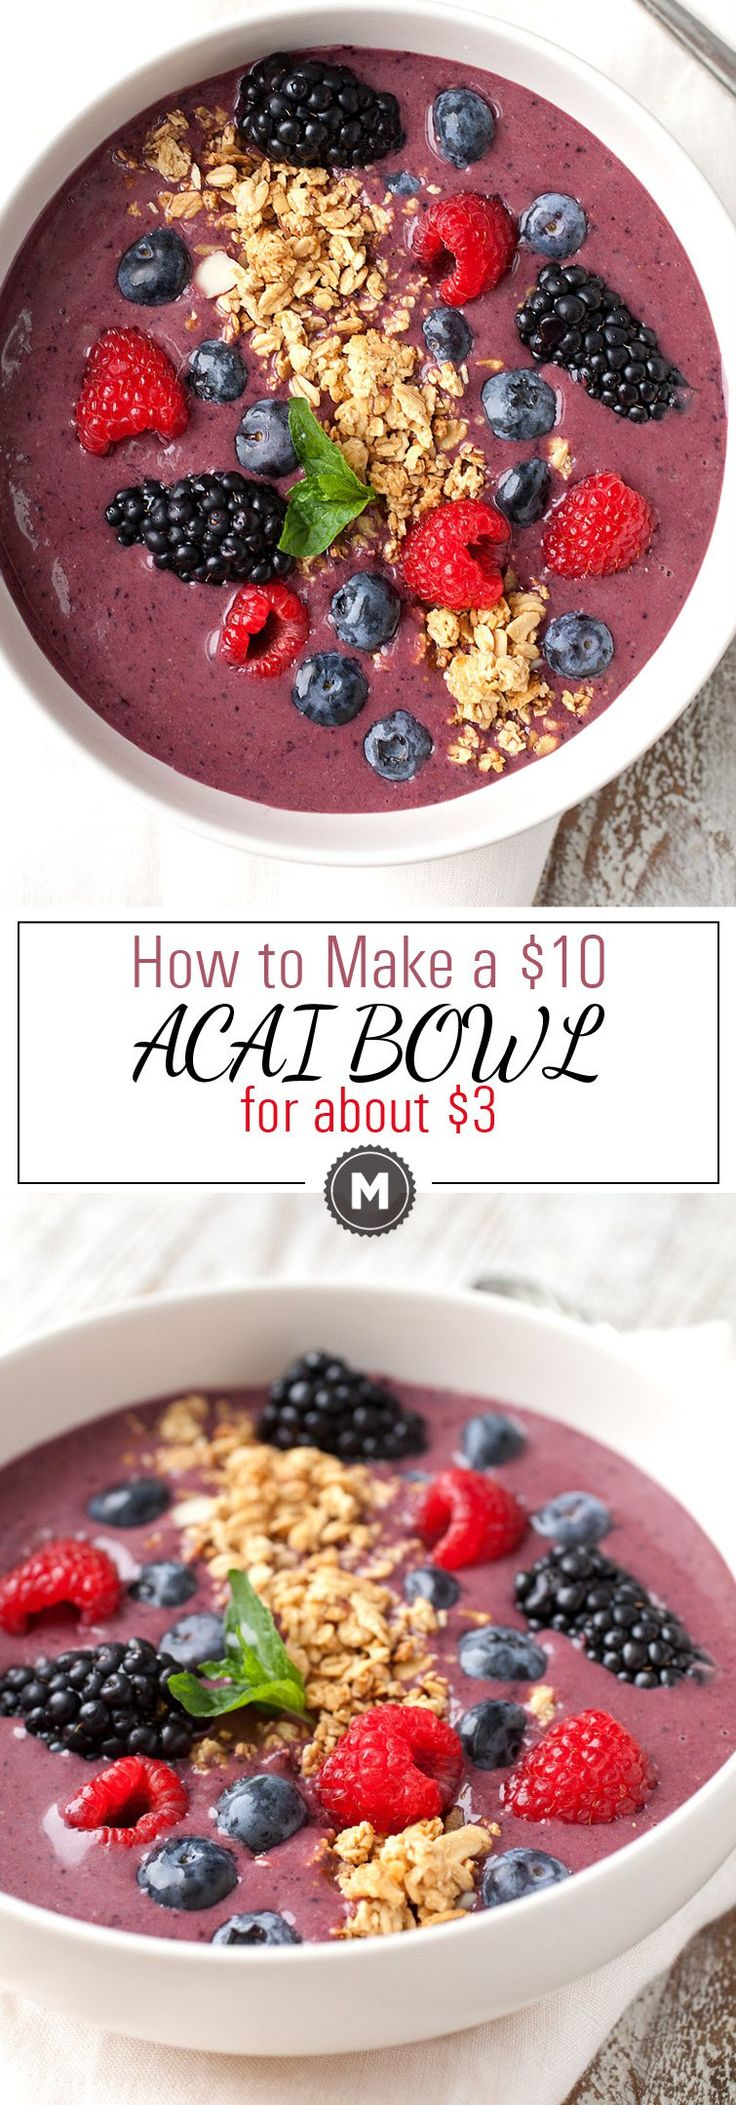 how to make easy acai bowl